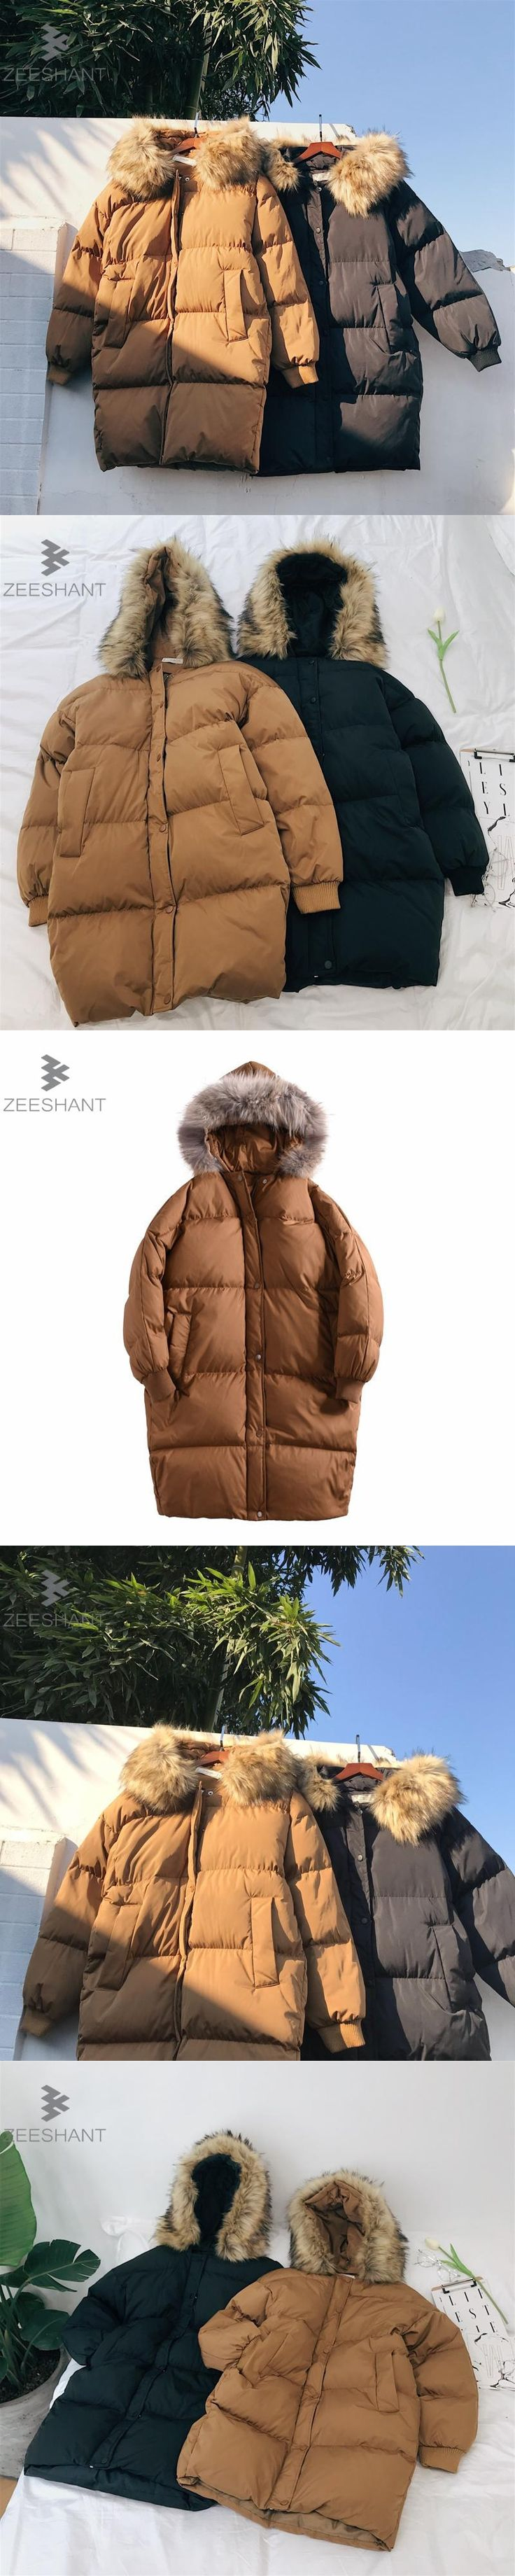 ZEESHANT -20 Degree Temperature Long Thick Warm Casual Winter Jacket Men Parkas Hombre Invierno Fur Hooded Outwear Windbreaker